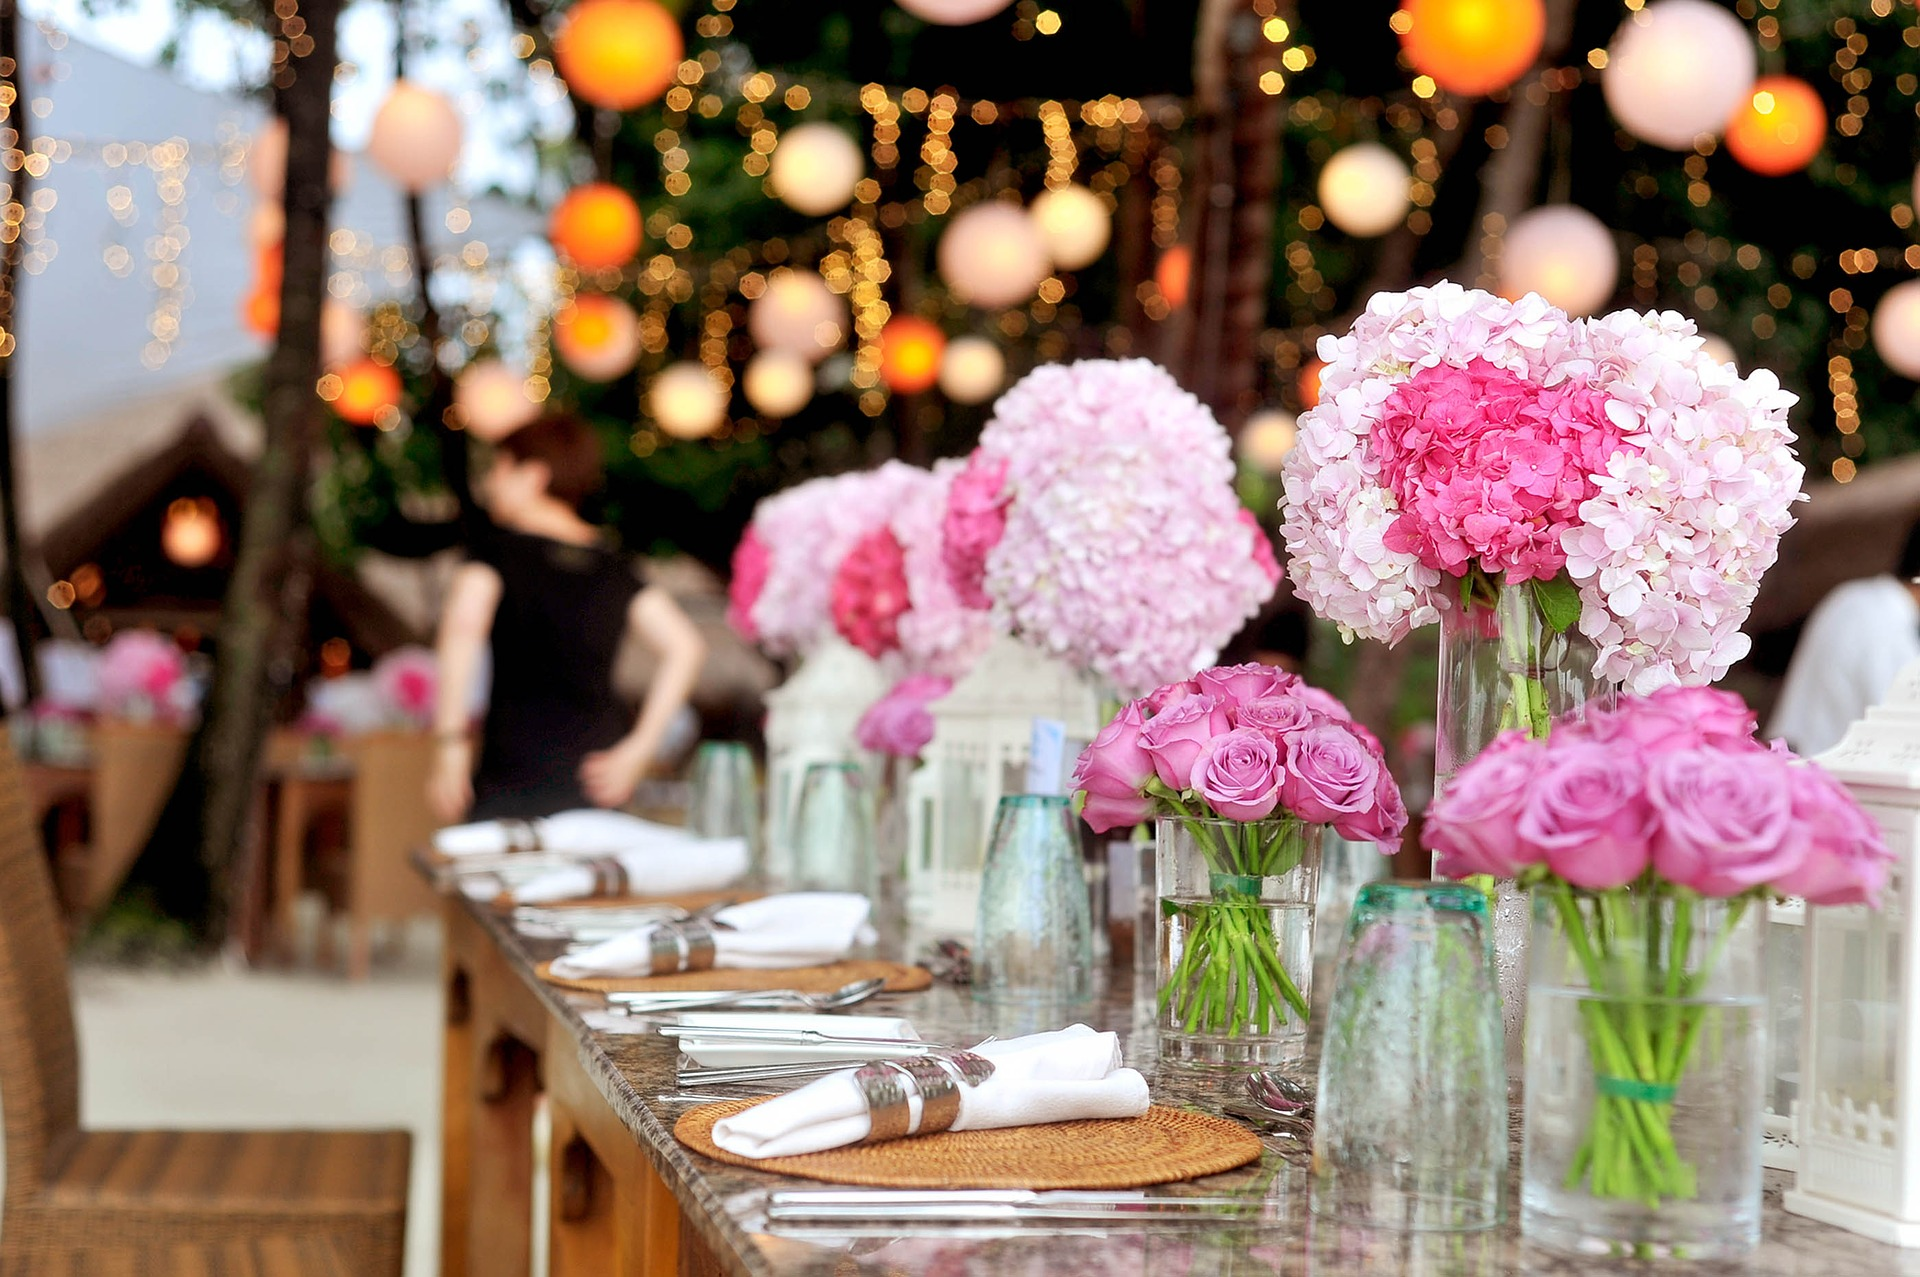 Modern Wedding Guest Etiquette Rules - Can you buy wedding gifts that aren't on the registry